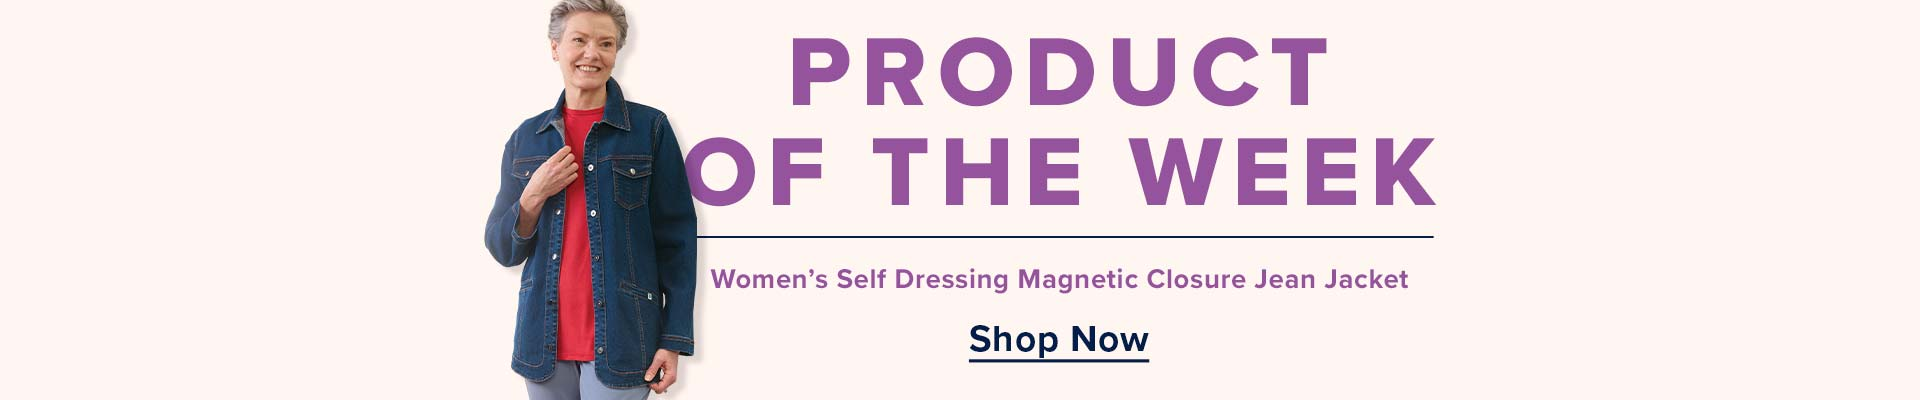 Product of the Week: Women's Self Dressing Magnetic Closure Jean Jacket